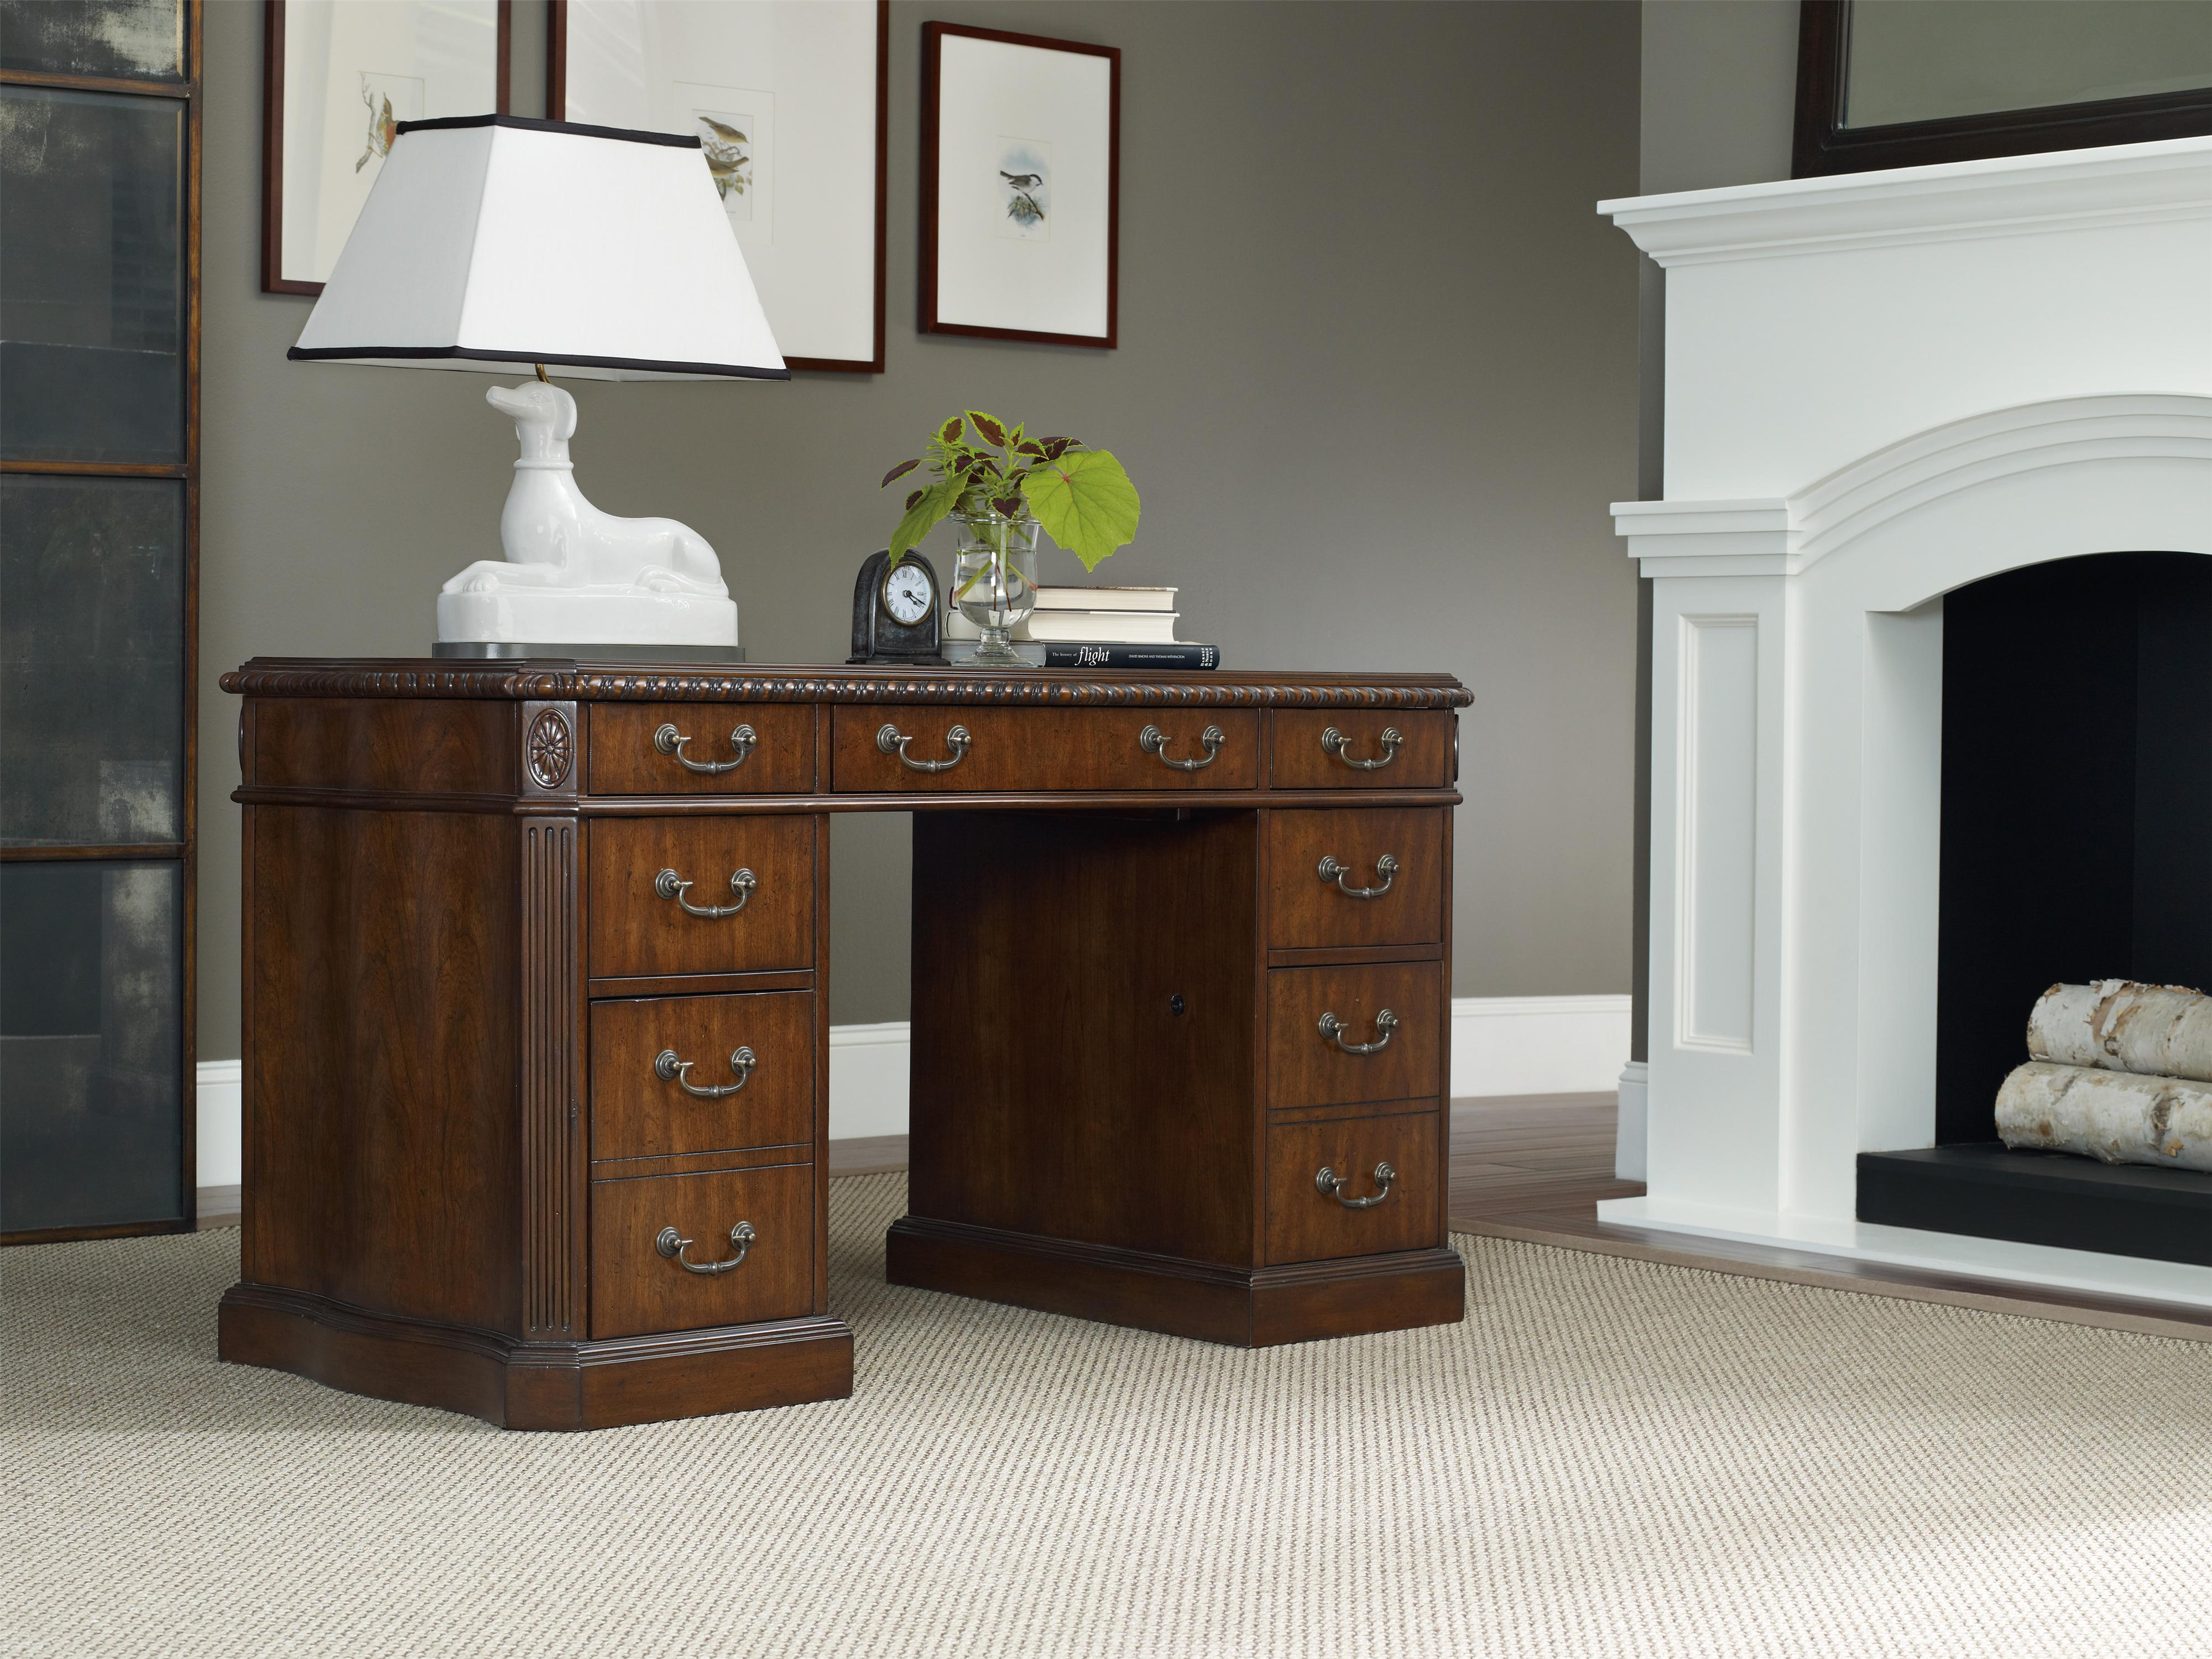 Hooker Furniture Home Office Rope Moulded Double Pedestal Desk With Leather Writing Surface And